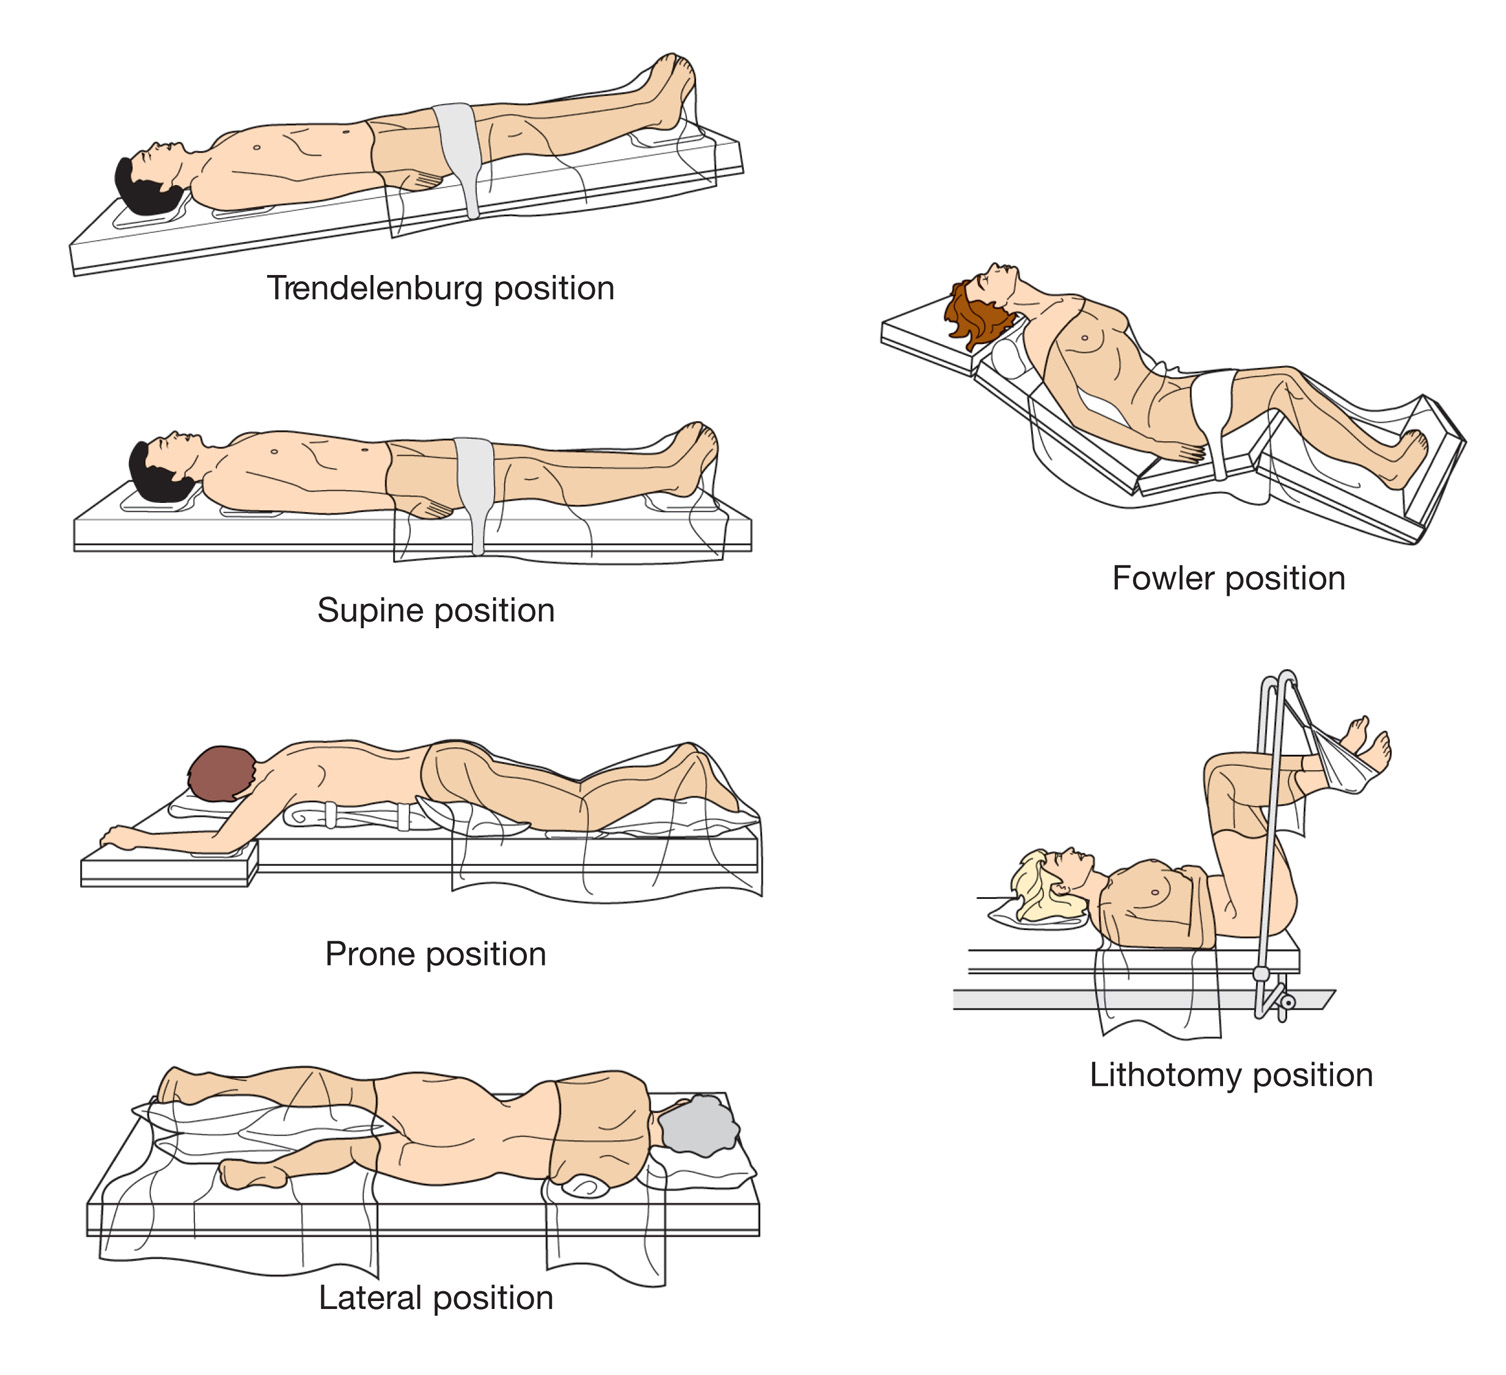 surgical supine positions - 960×876